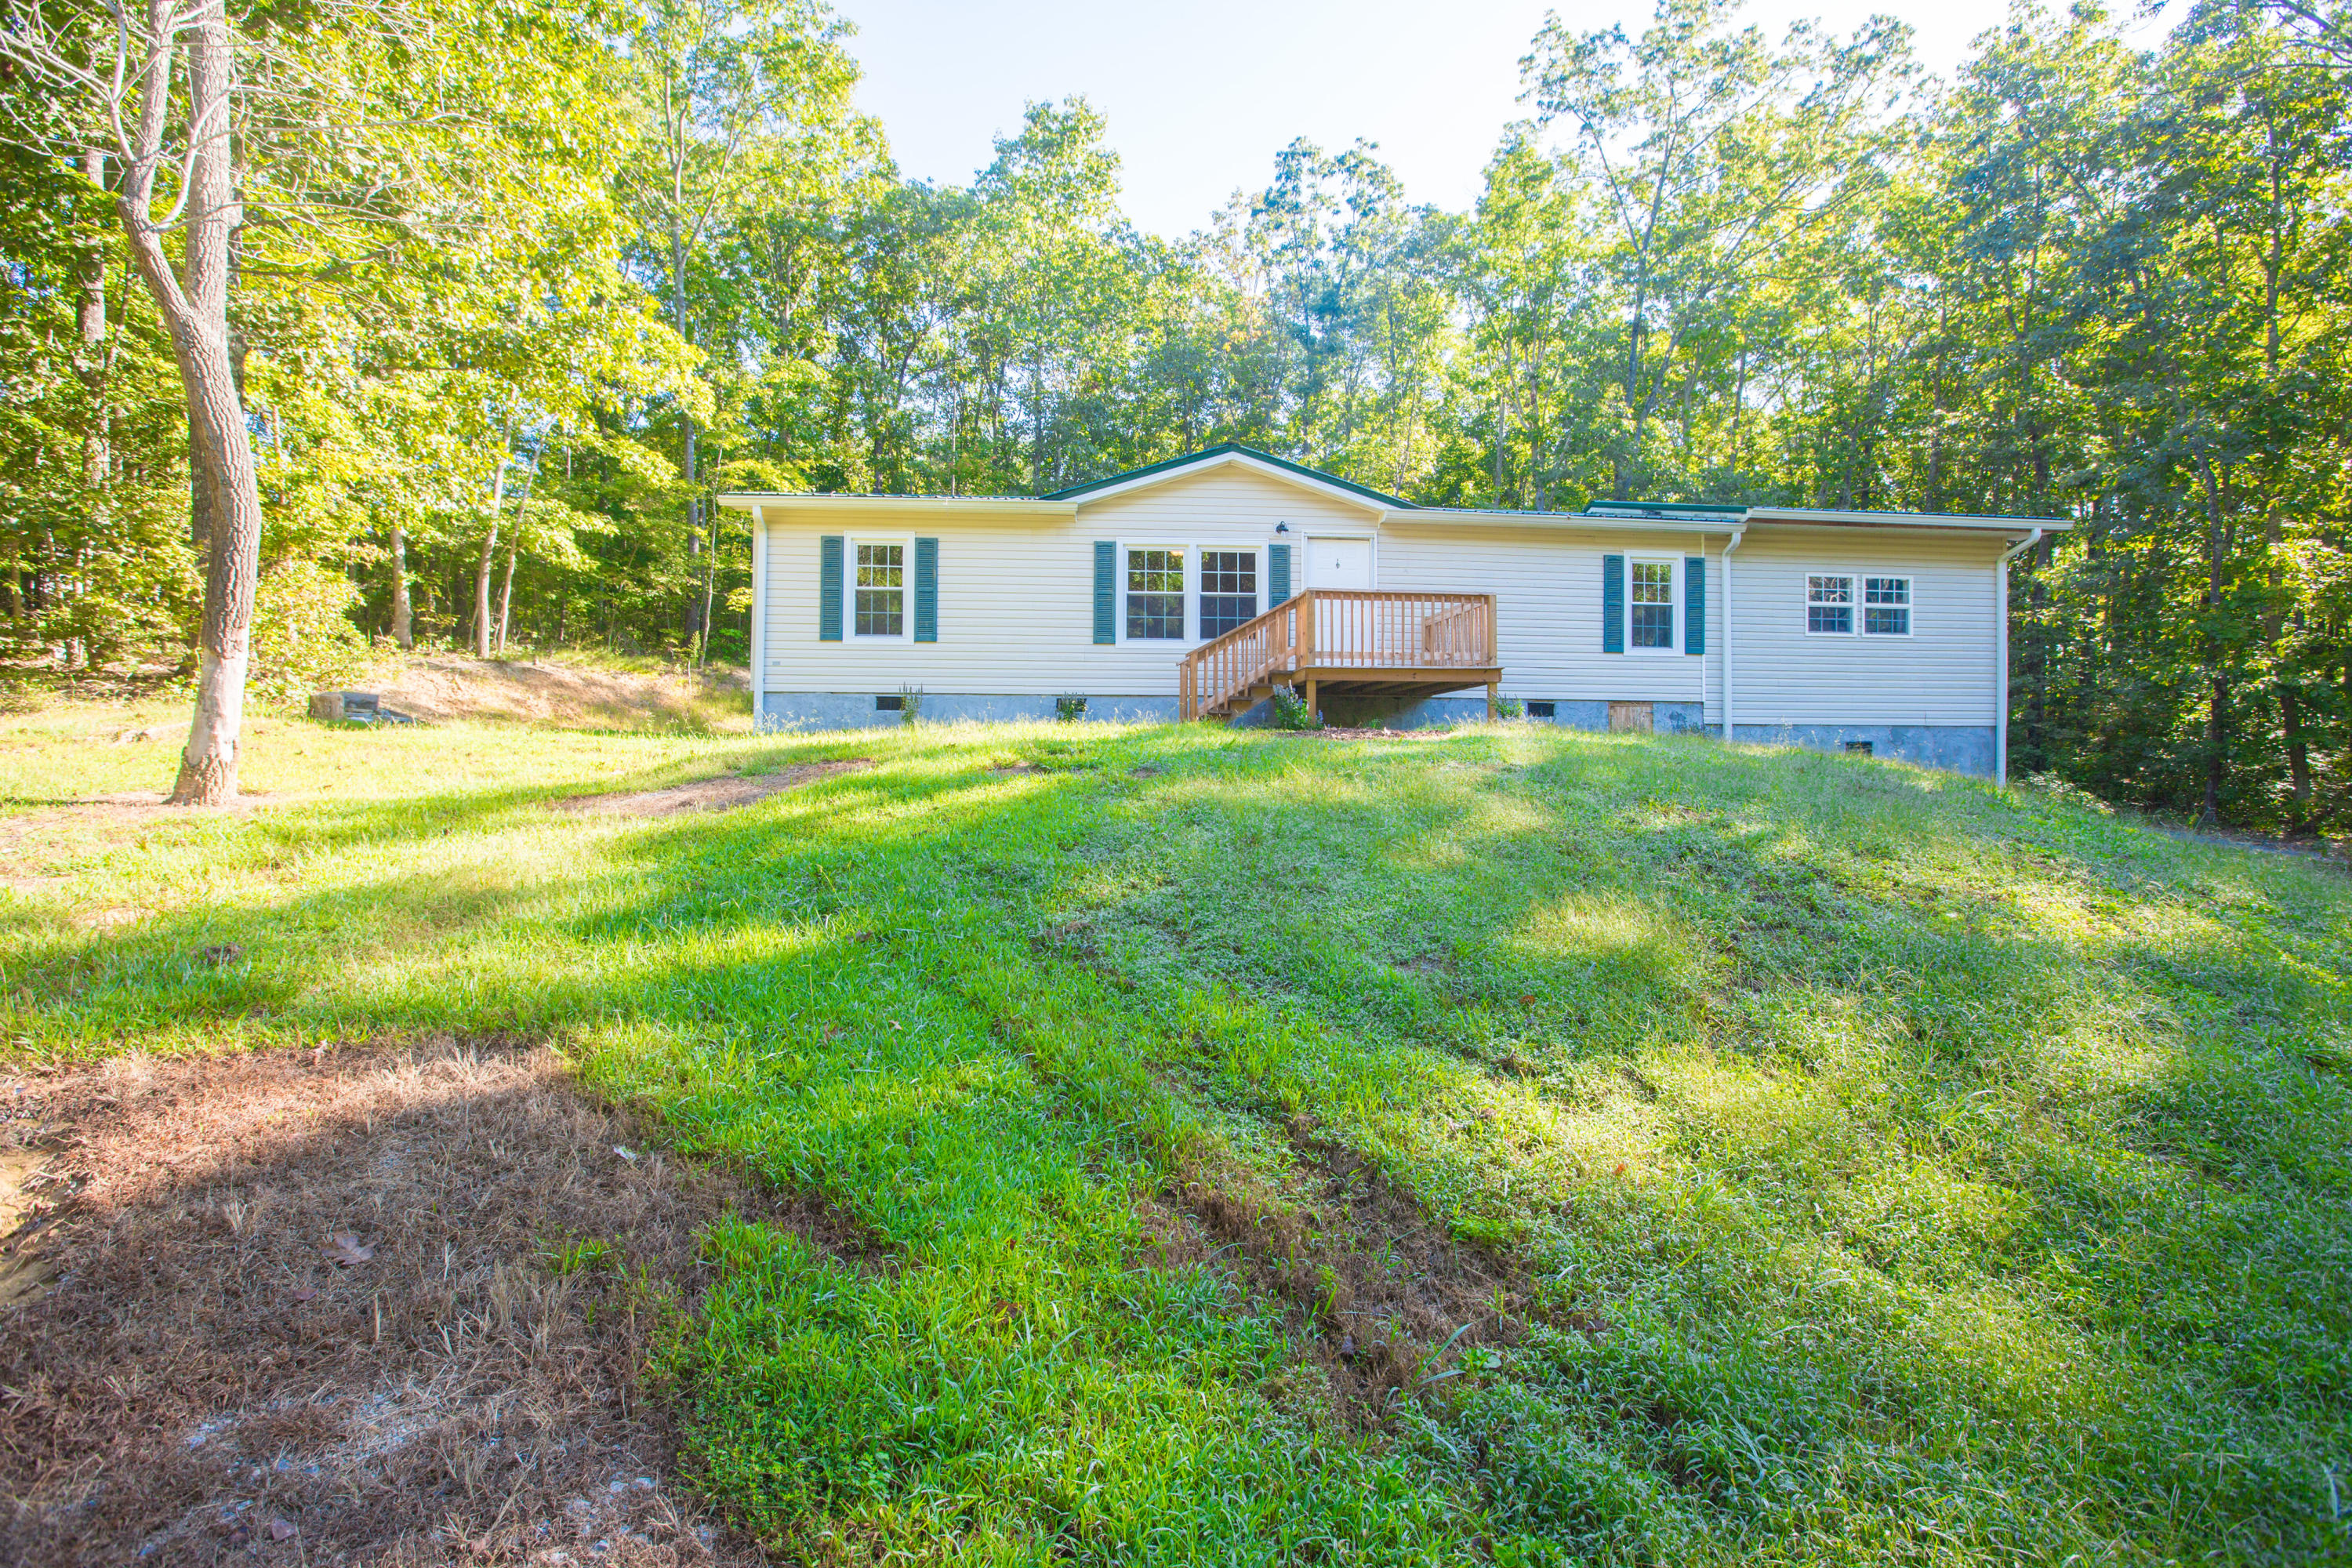 117 Varnell Rd, Lookout Mountain, GA 30750